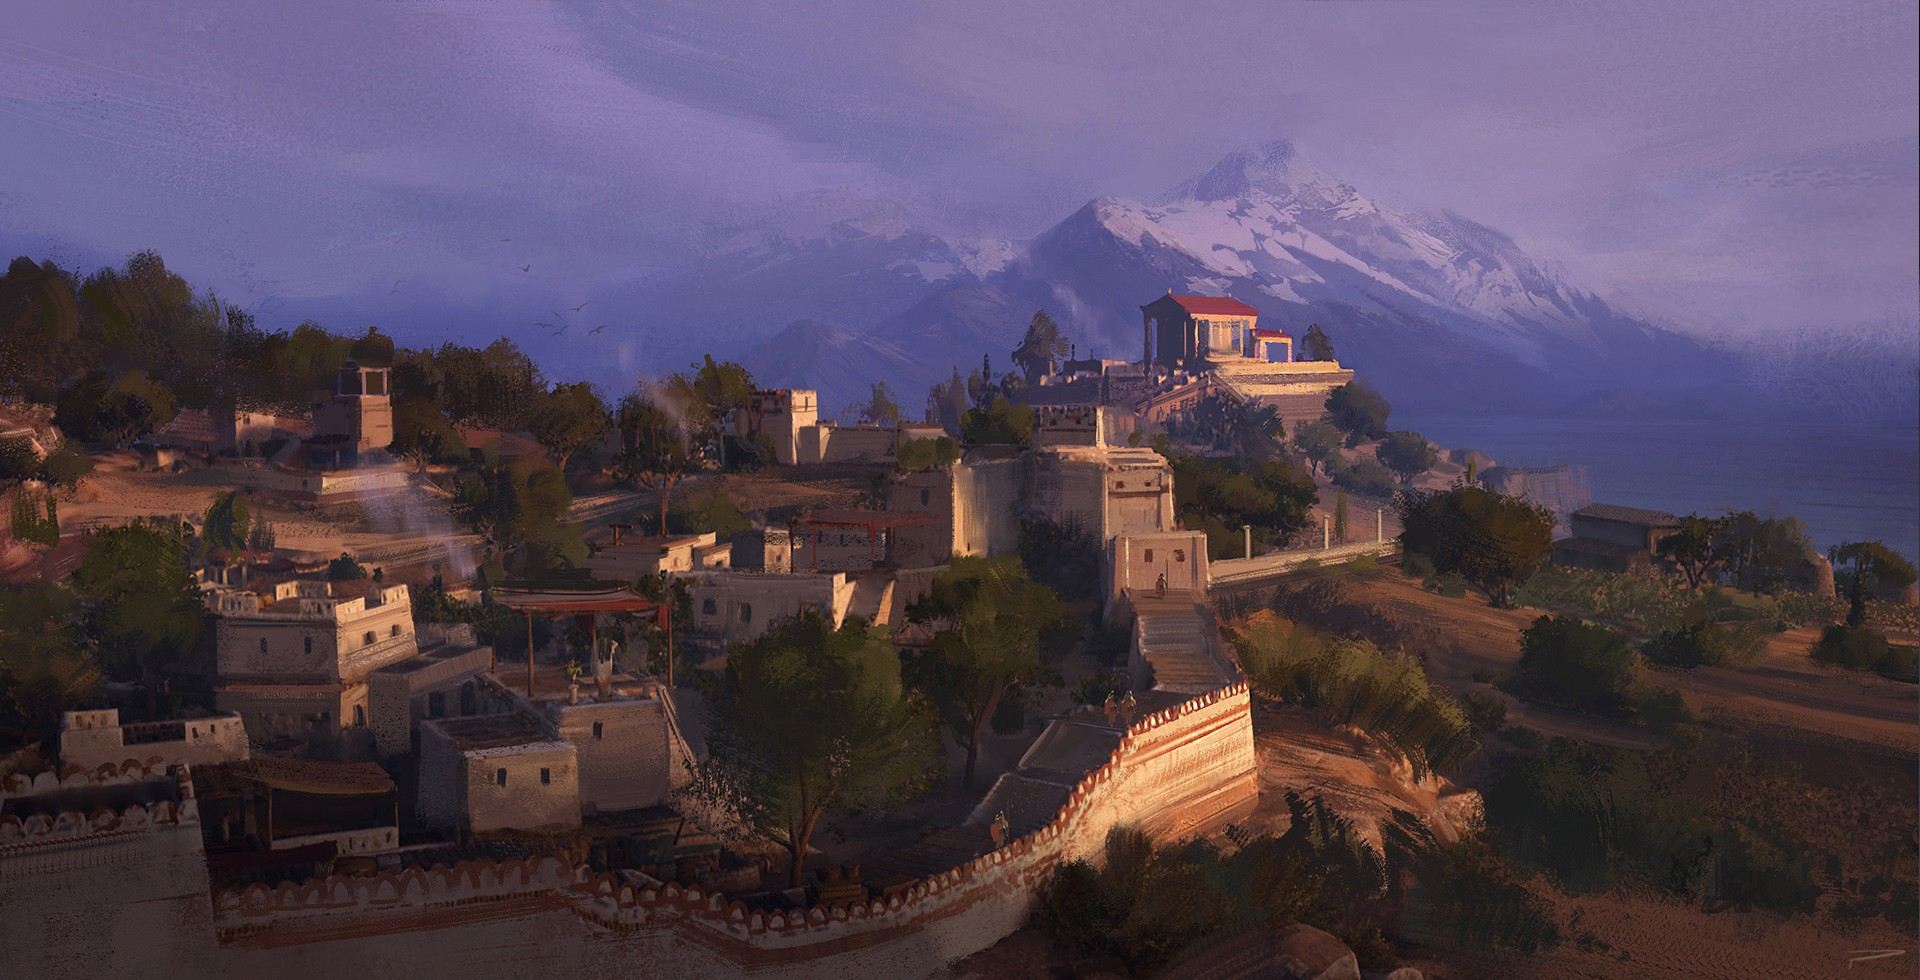 © Hugo Puzzuoli, Crete City, Assassin's Creed Odyssey, Ubisoft.